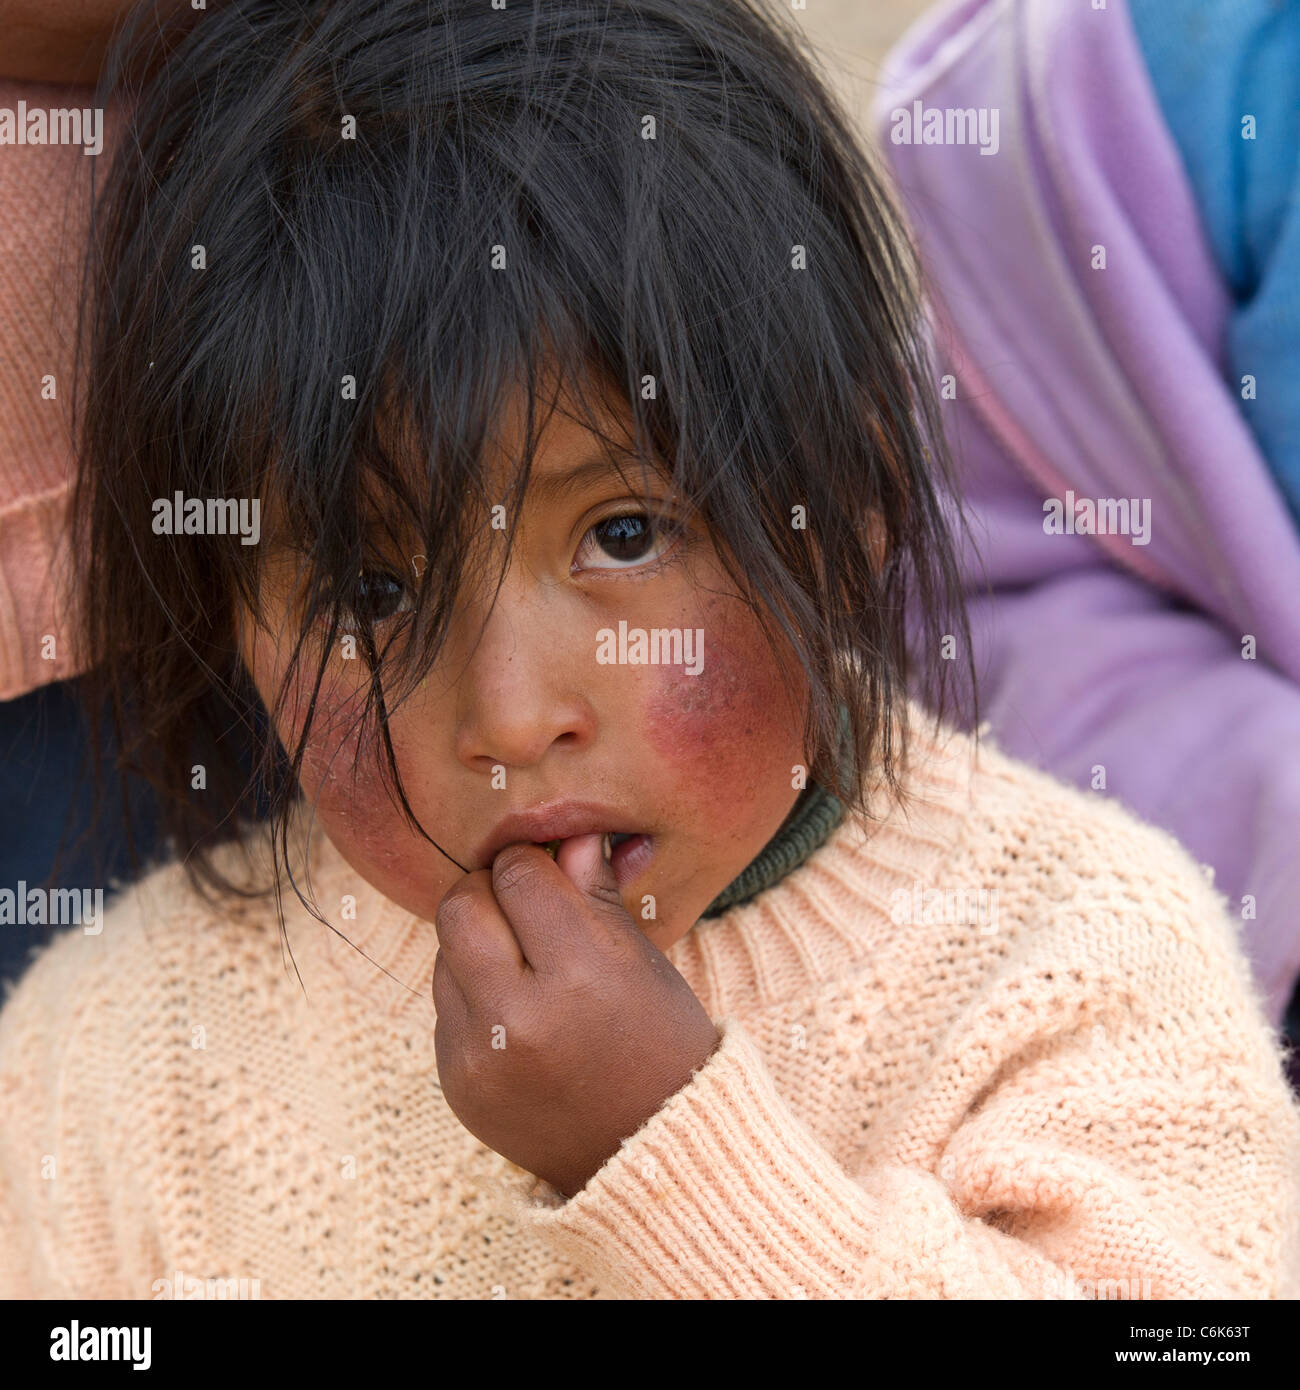 Portrait of a girl with tousled hair, Sacred Valley, Cusco Region, Peru - Stock Image